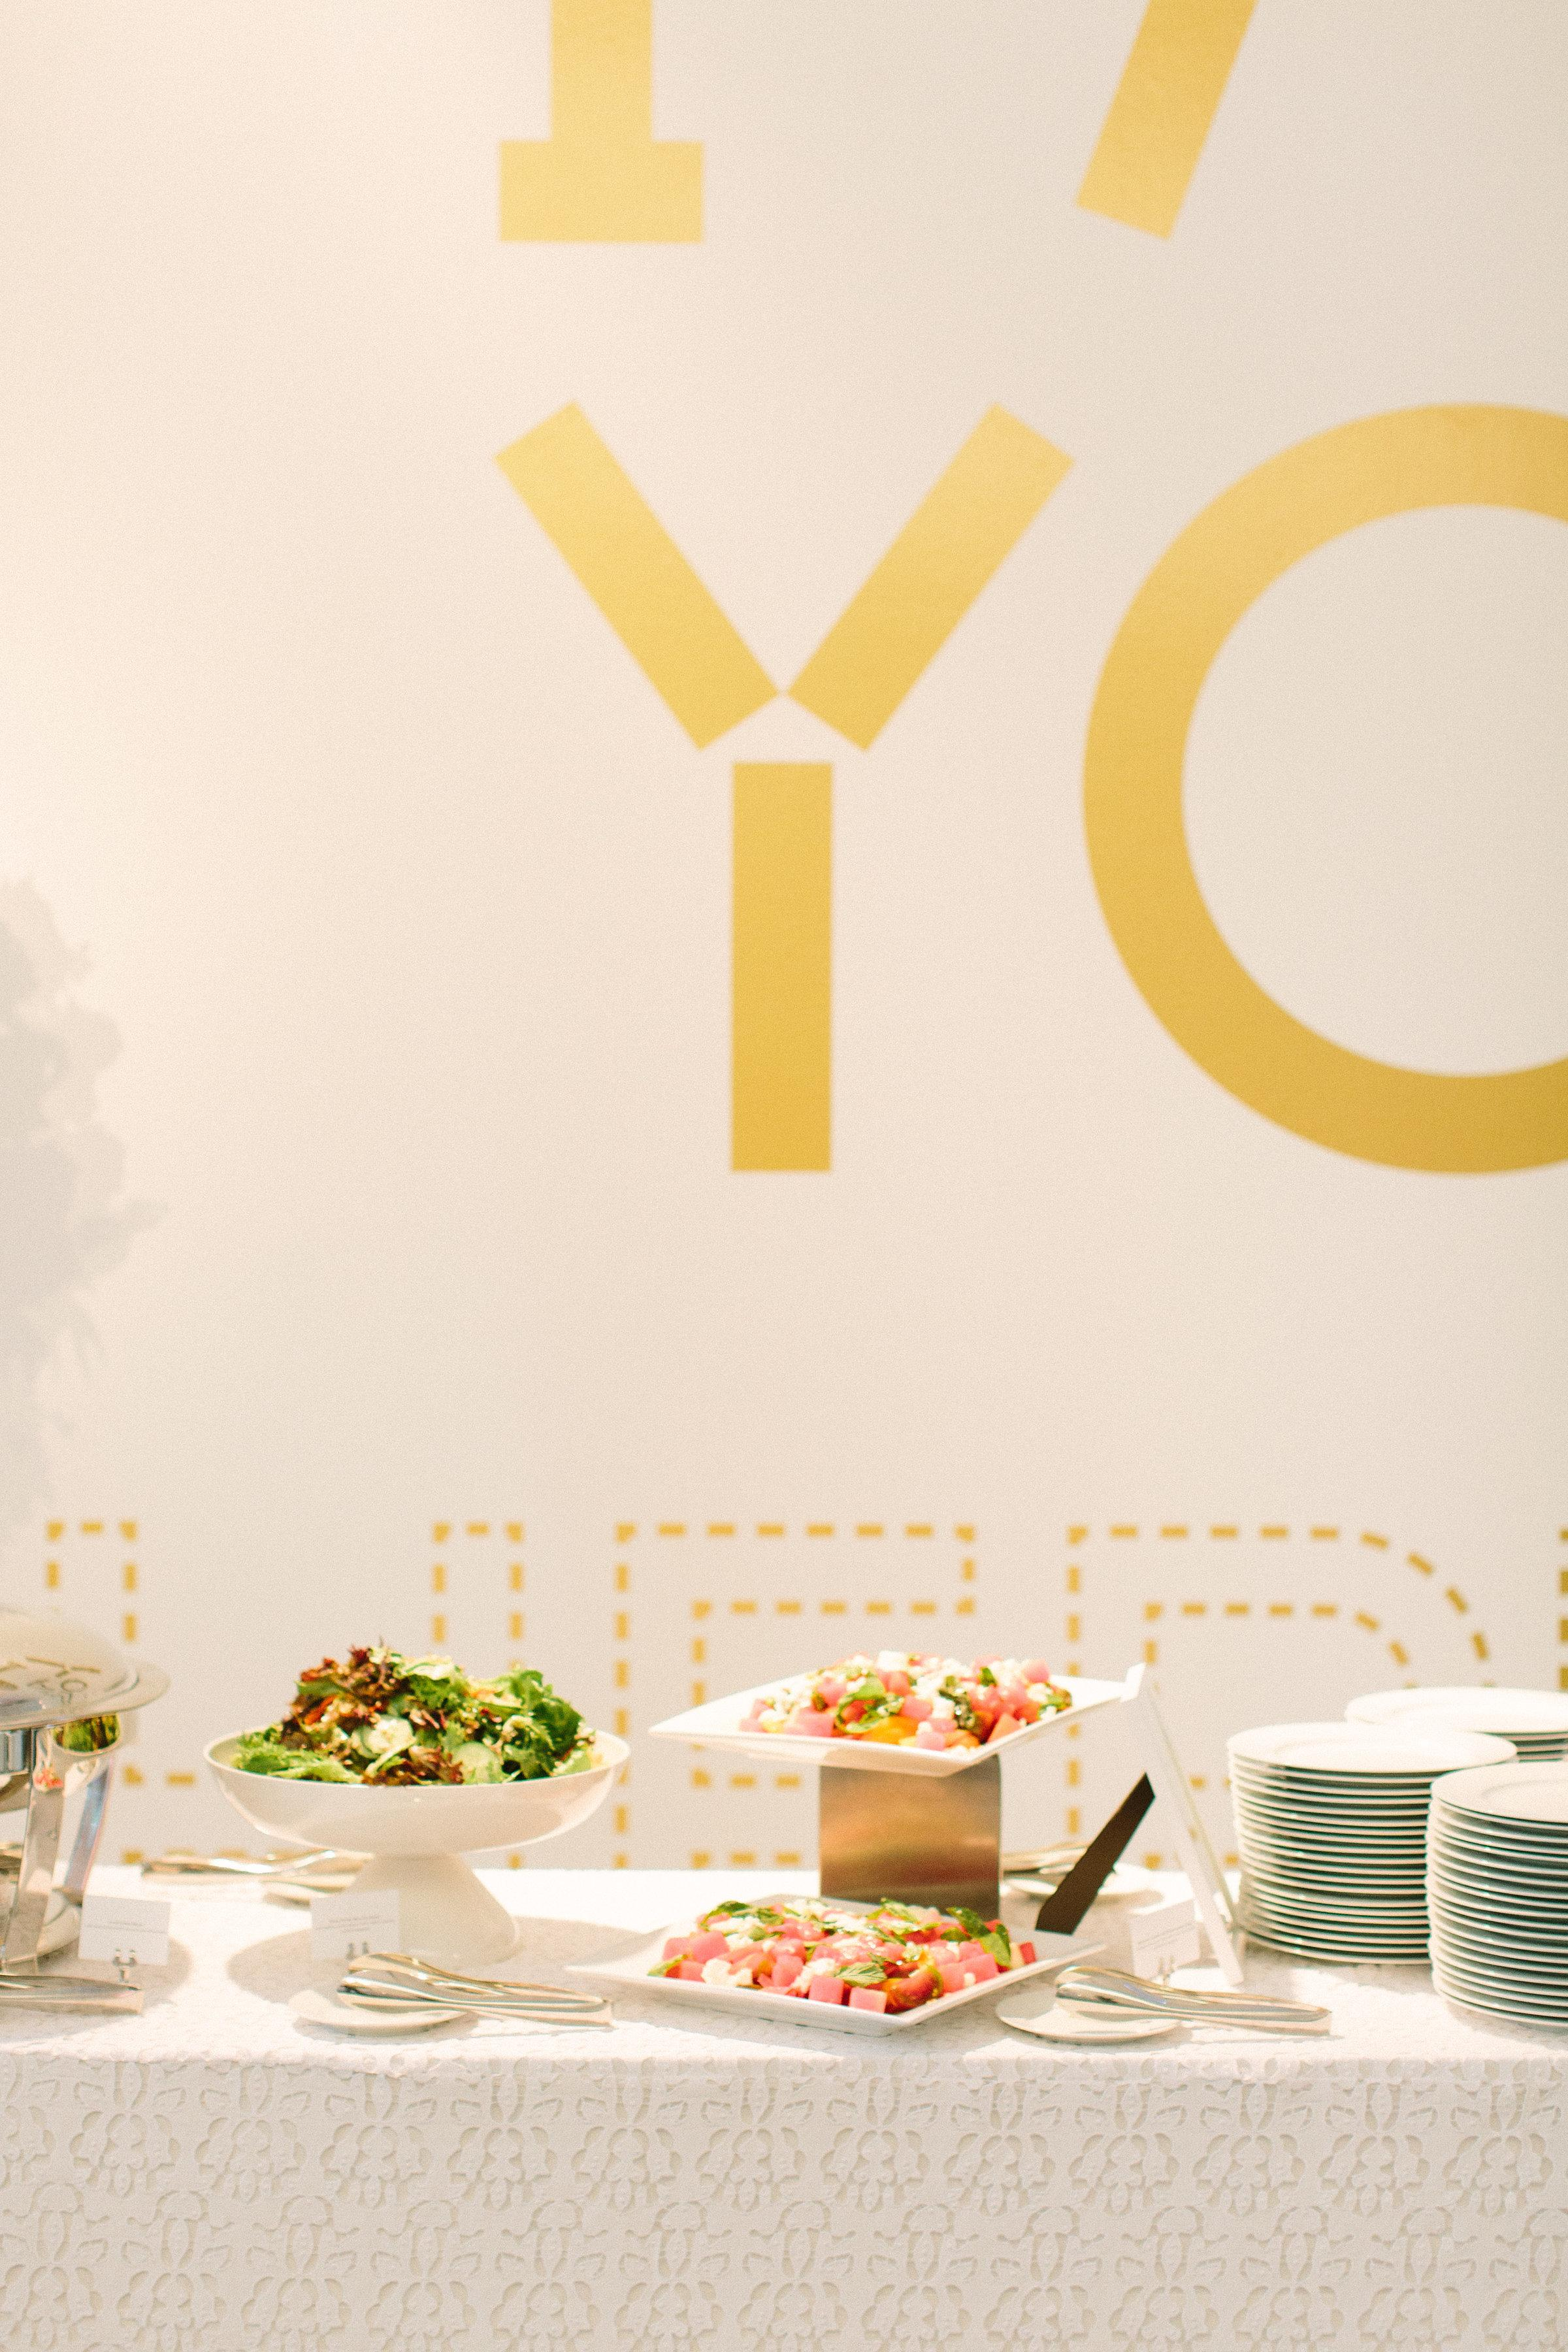 An elegant display of green and watermelon salads are displayed on white tableware besides stacked white plates on a contemporary-patterned white tablecloth.